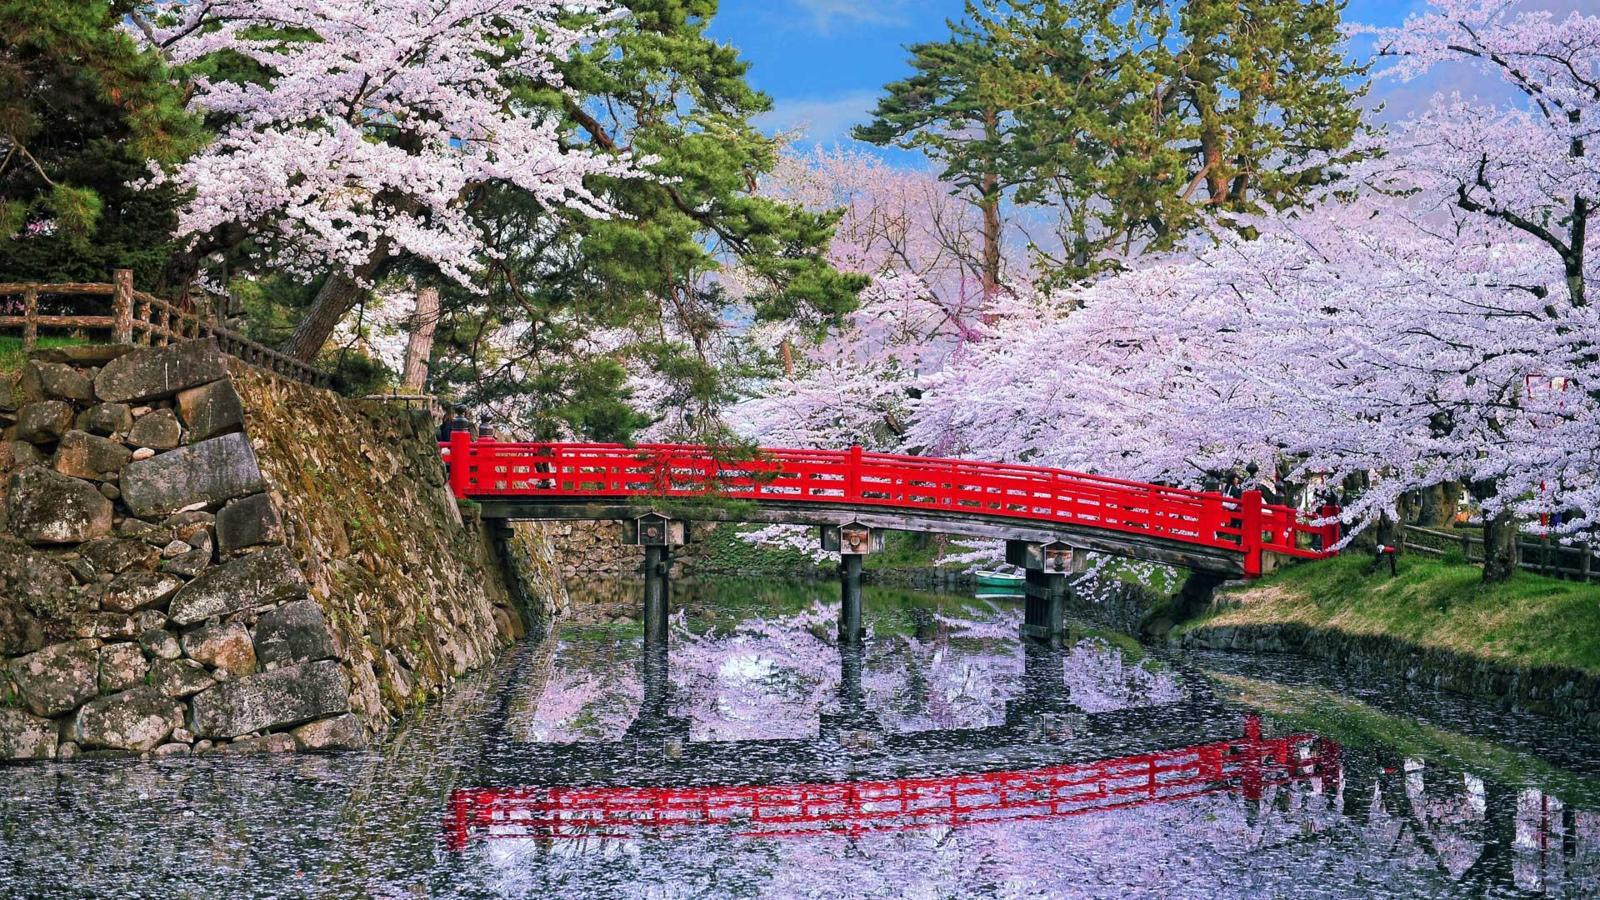 Cherry blossoms around the world - While Japan is home to some of the most well-known cherry blossom scenes, many cities celebrate spring's arrival with these beautiful blooming trees. // BBC Travel